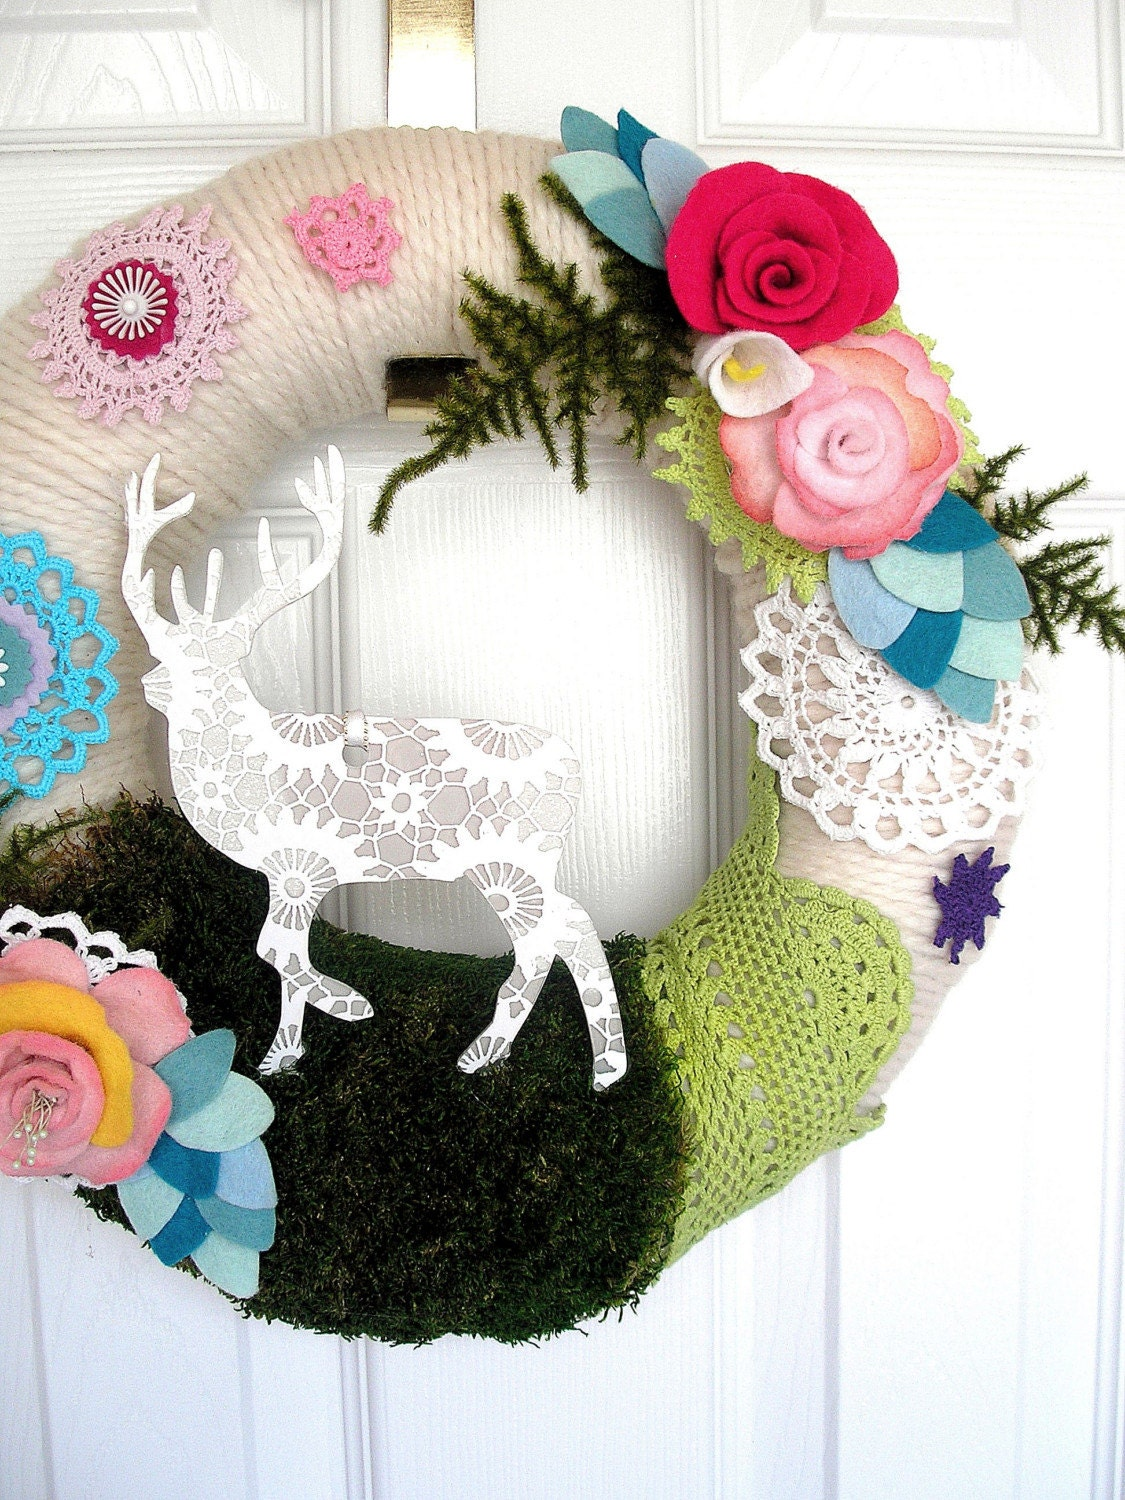 Chalet - Handmade Yarn Wreath